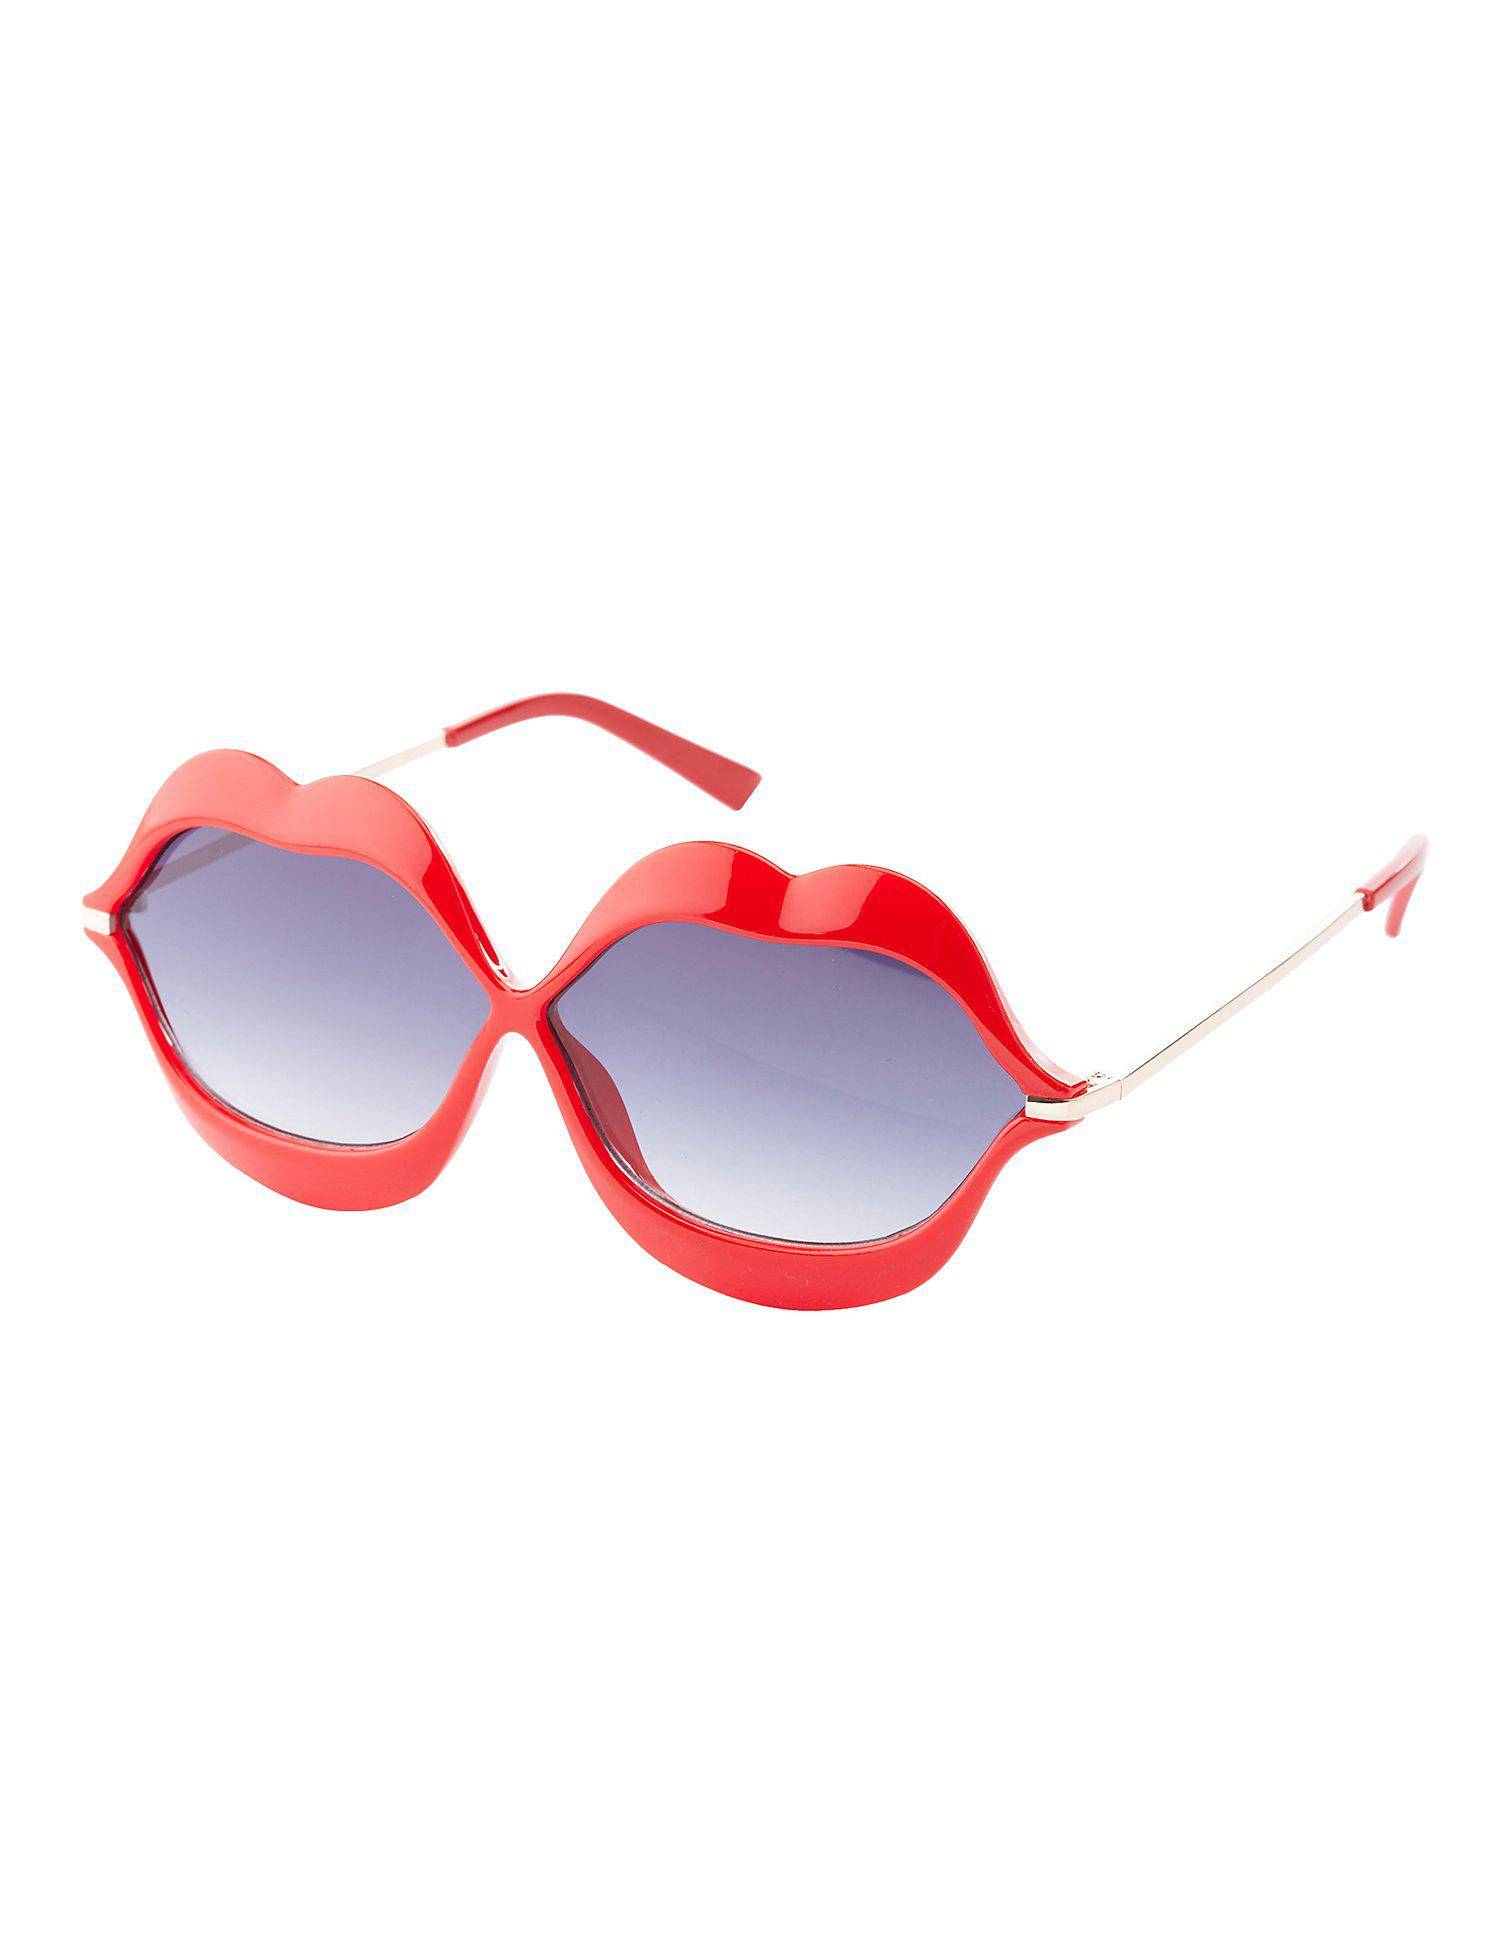 629ac986a1e Lyst - Charlotte Russe Plastic Lips Sunglasses in Red